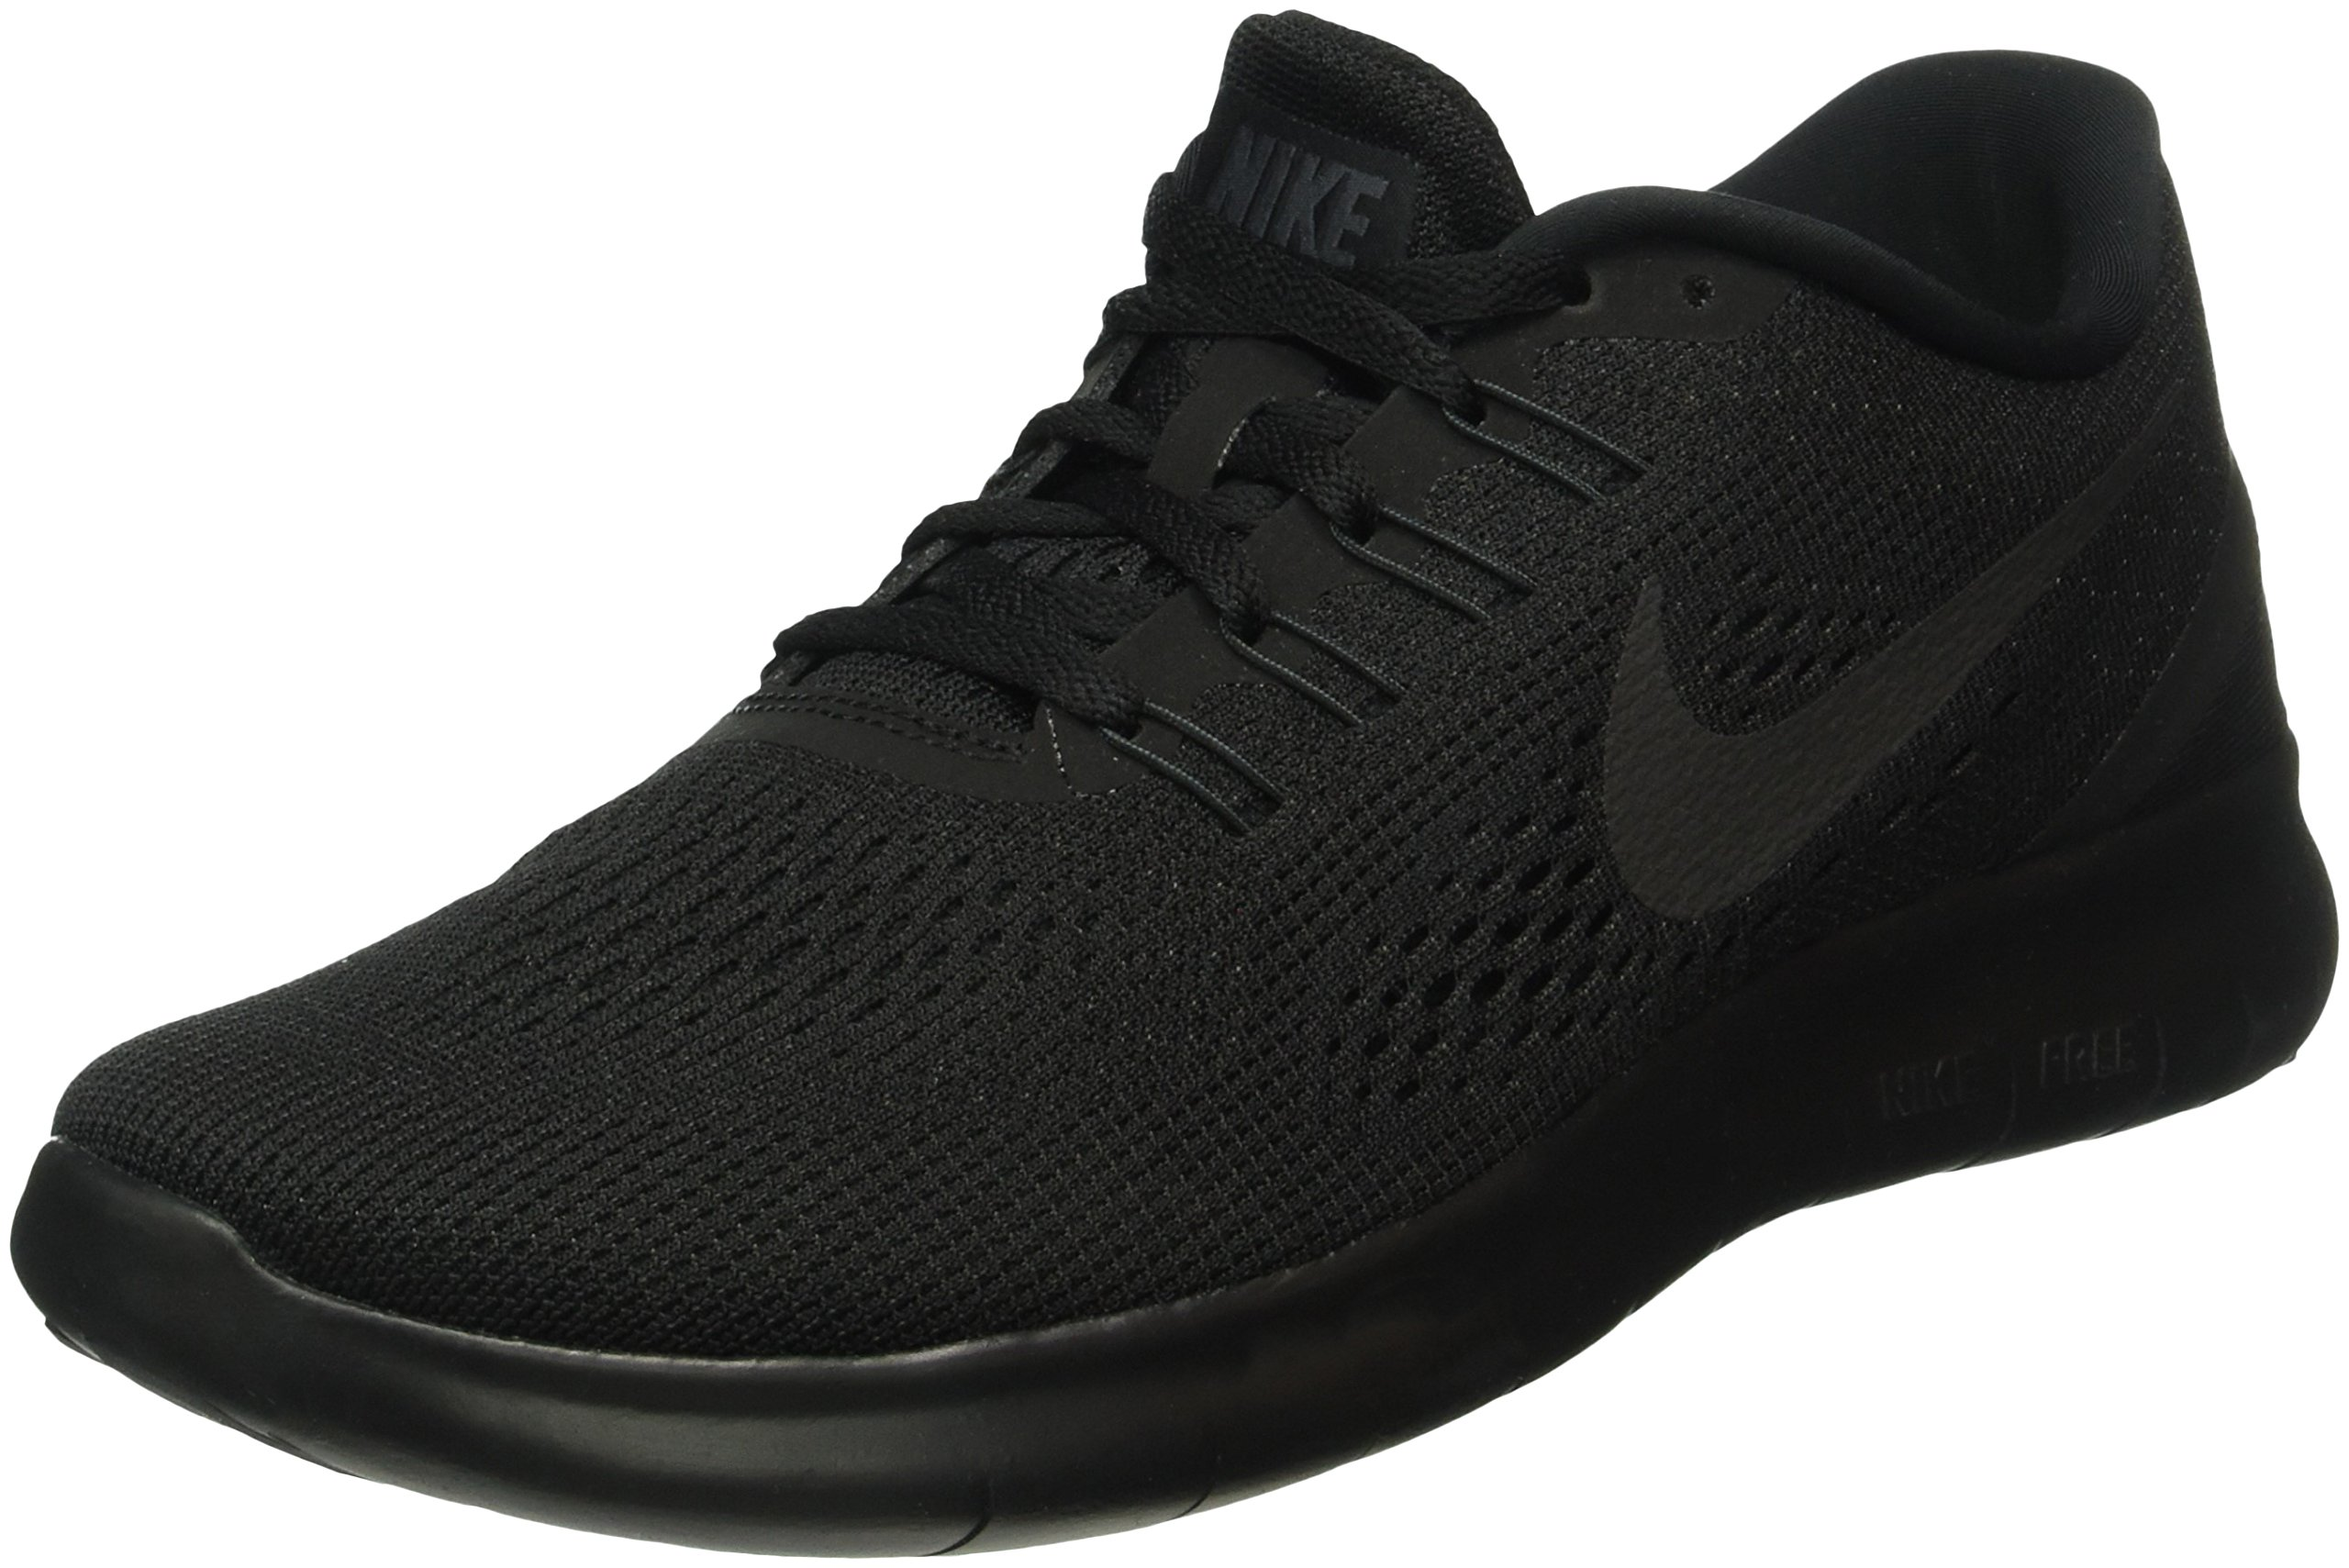 Men's All Black Comfortable Shoes: Amazon.com